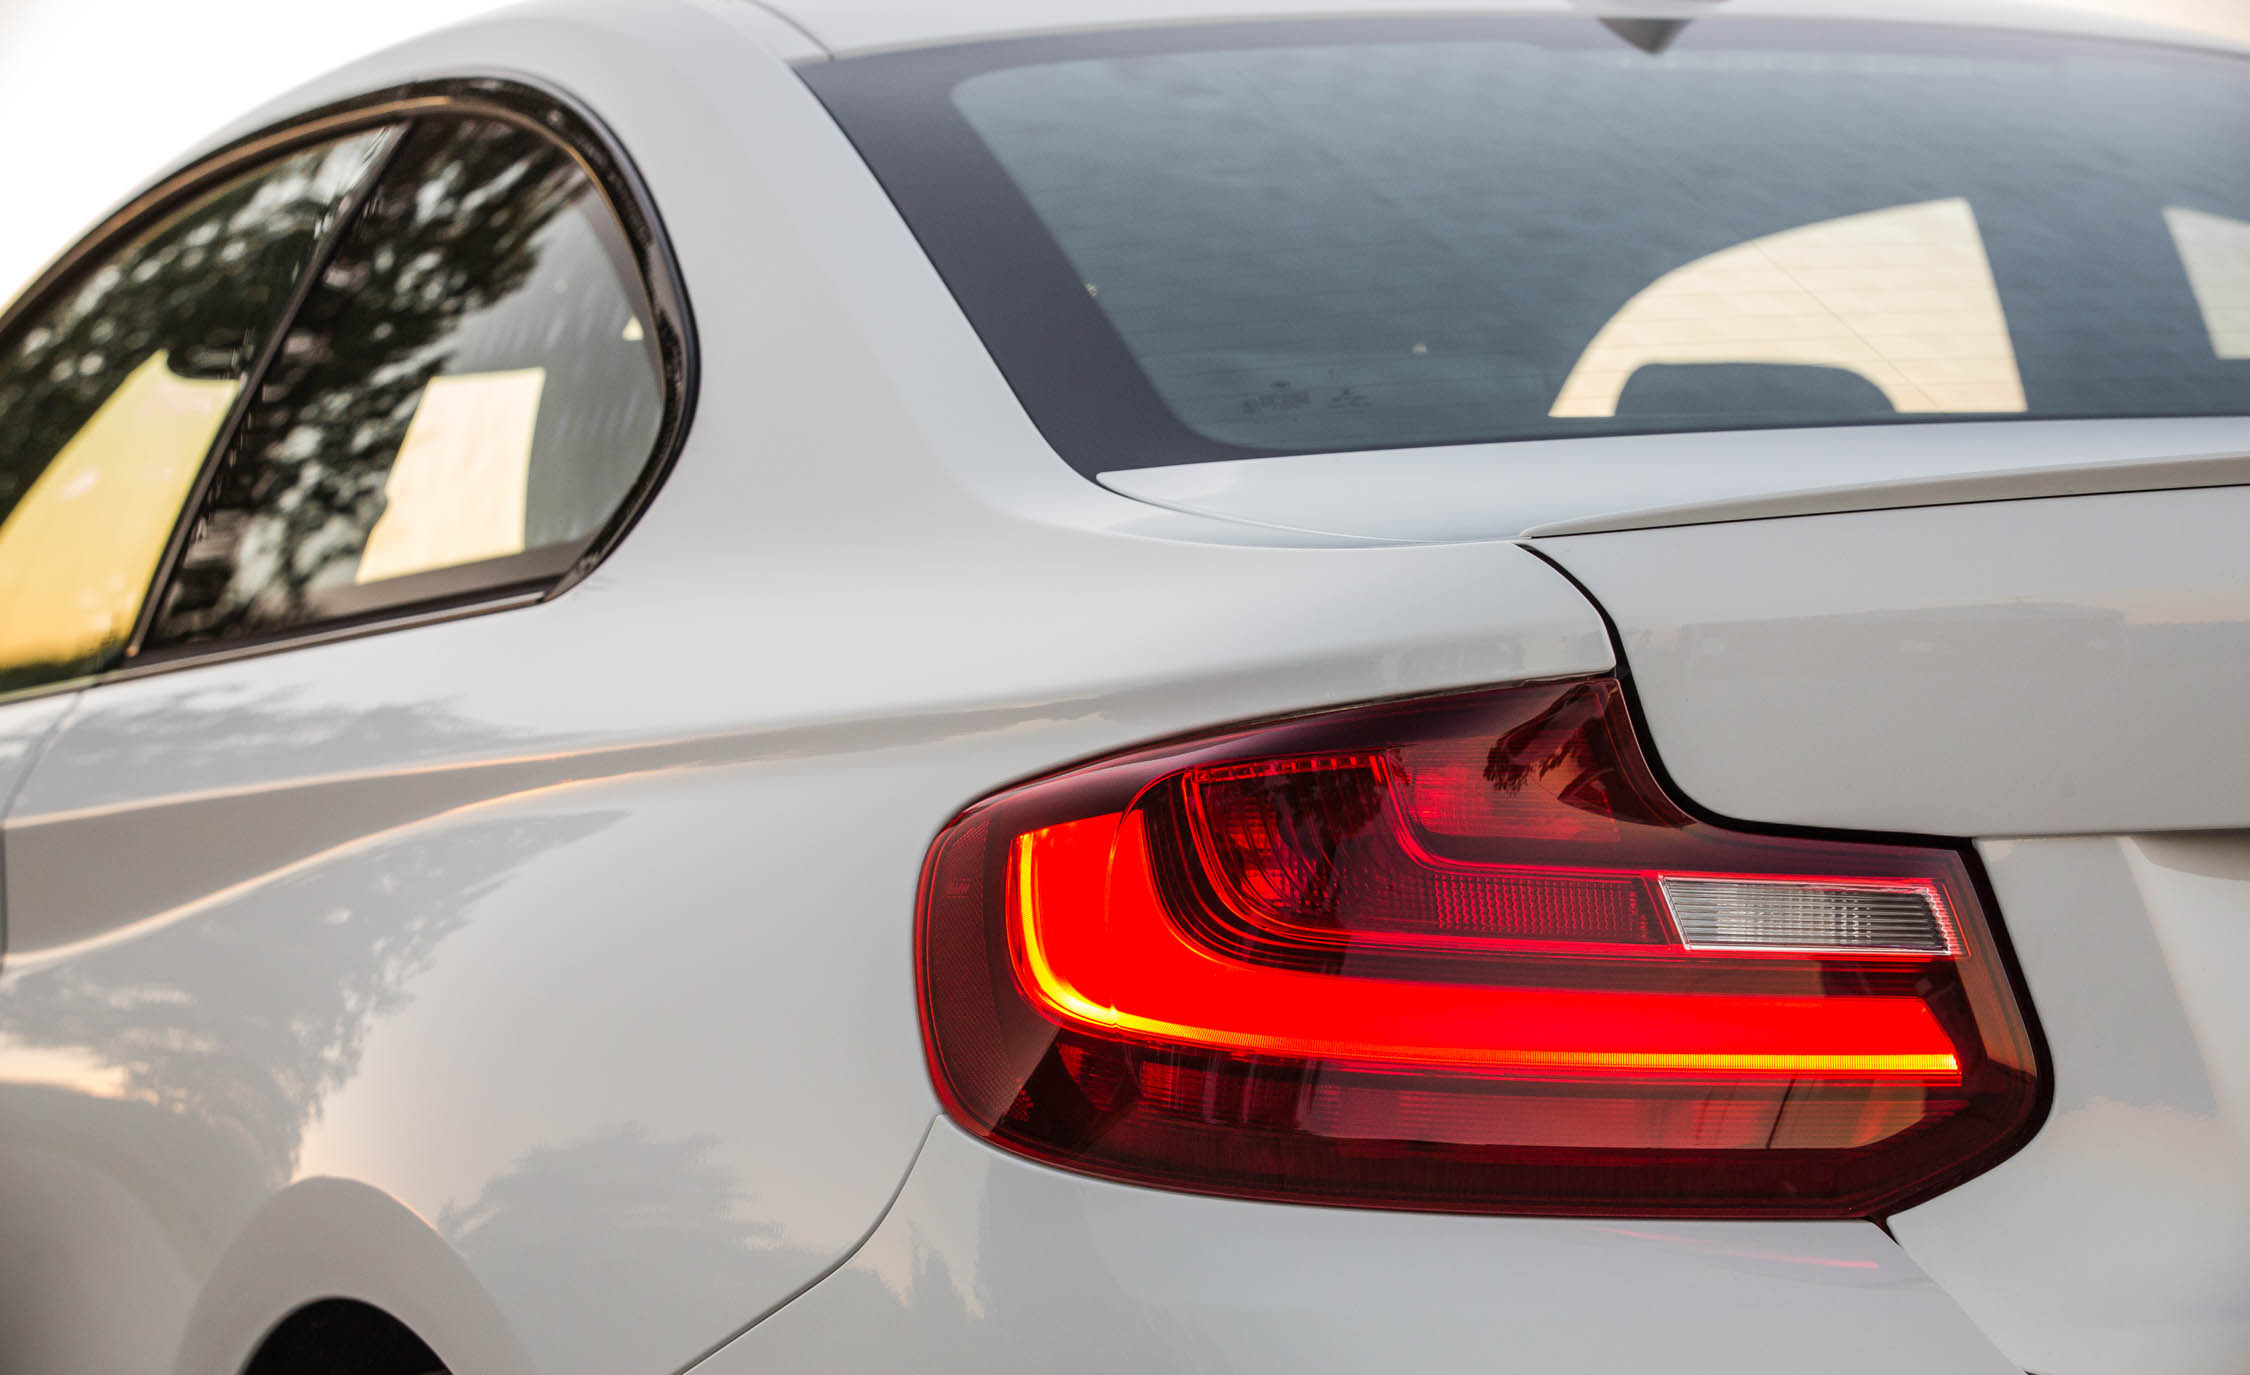 2017 BMW M240i Coupe Automatic Exterior View Taillight (Photo 18 of 36)